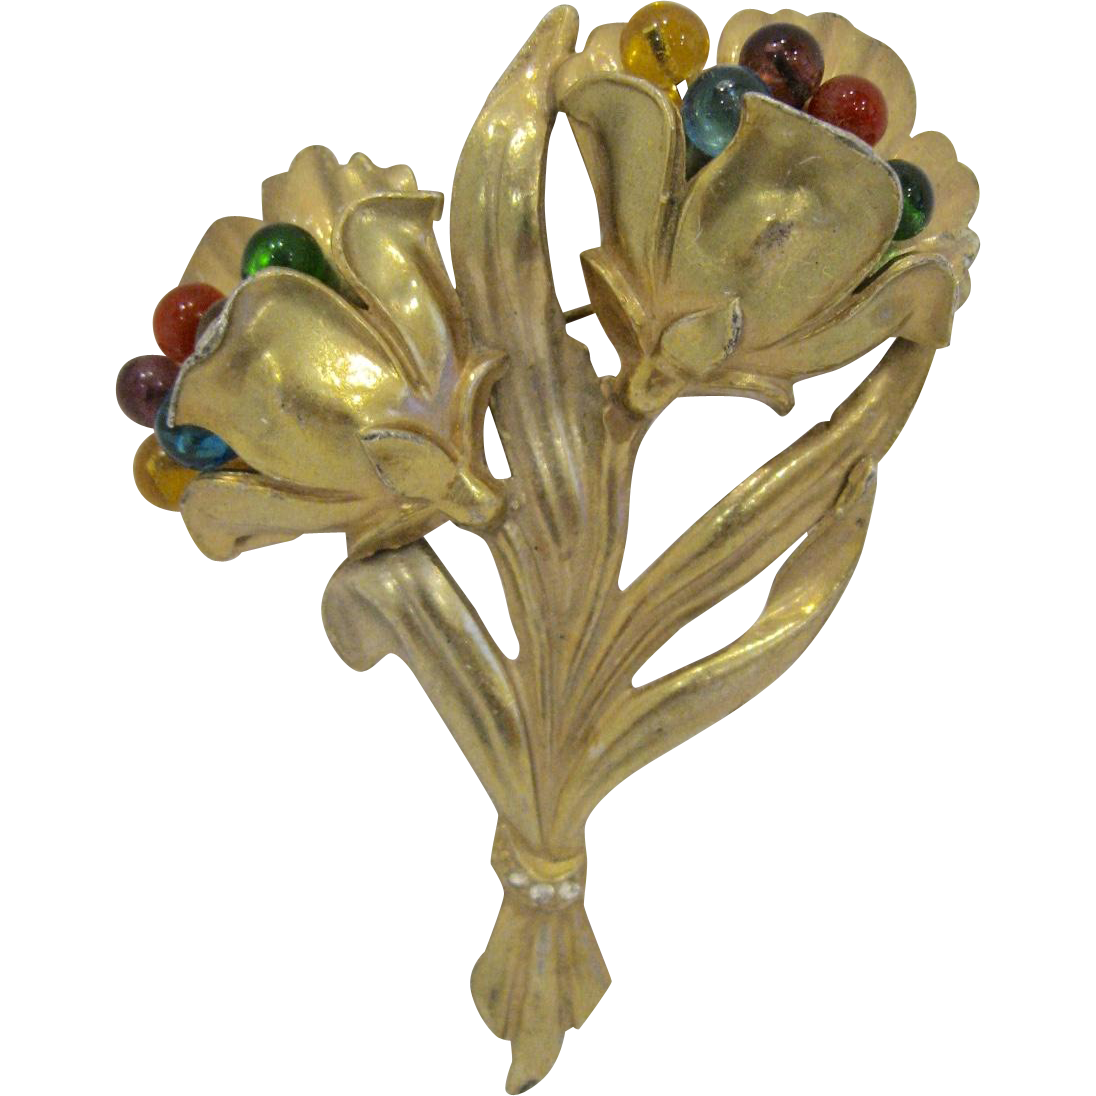 Antique Art Nouveau Double Flower Brooch with Glass Beads